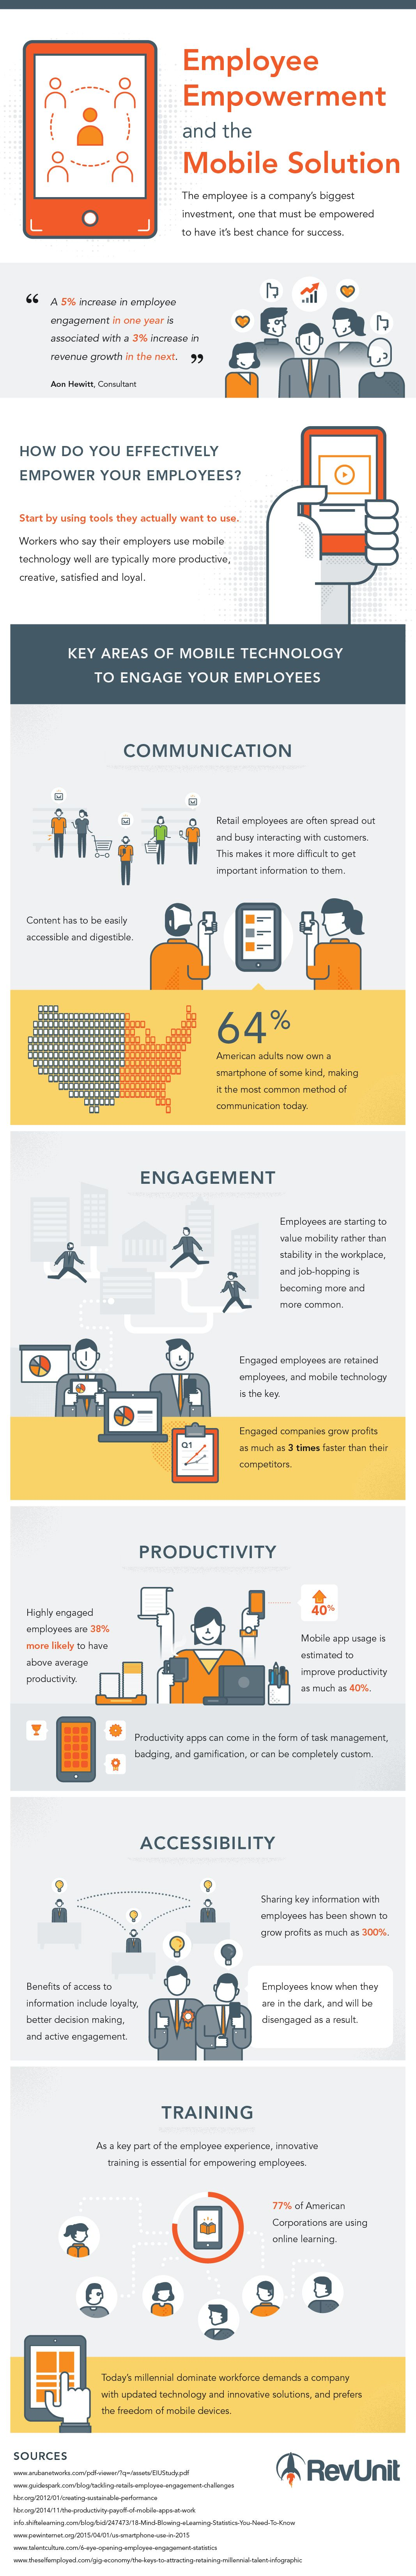 Employee Empowerment and The Mobile Solution